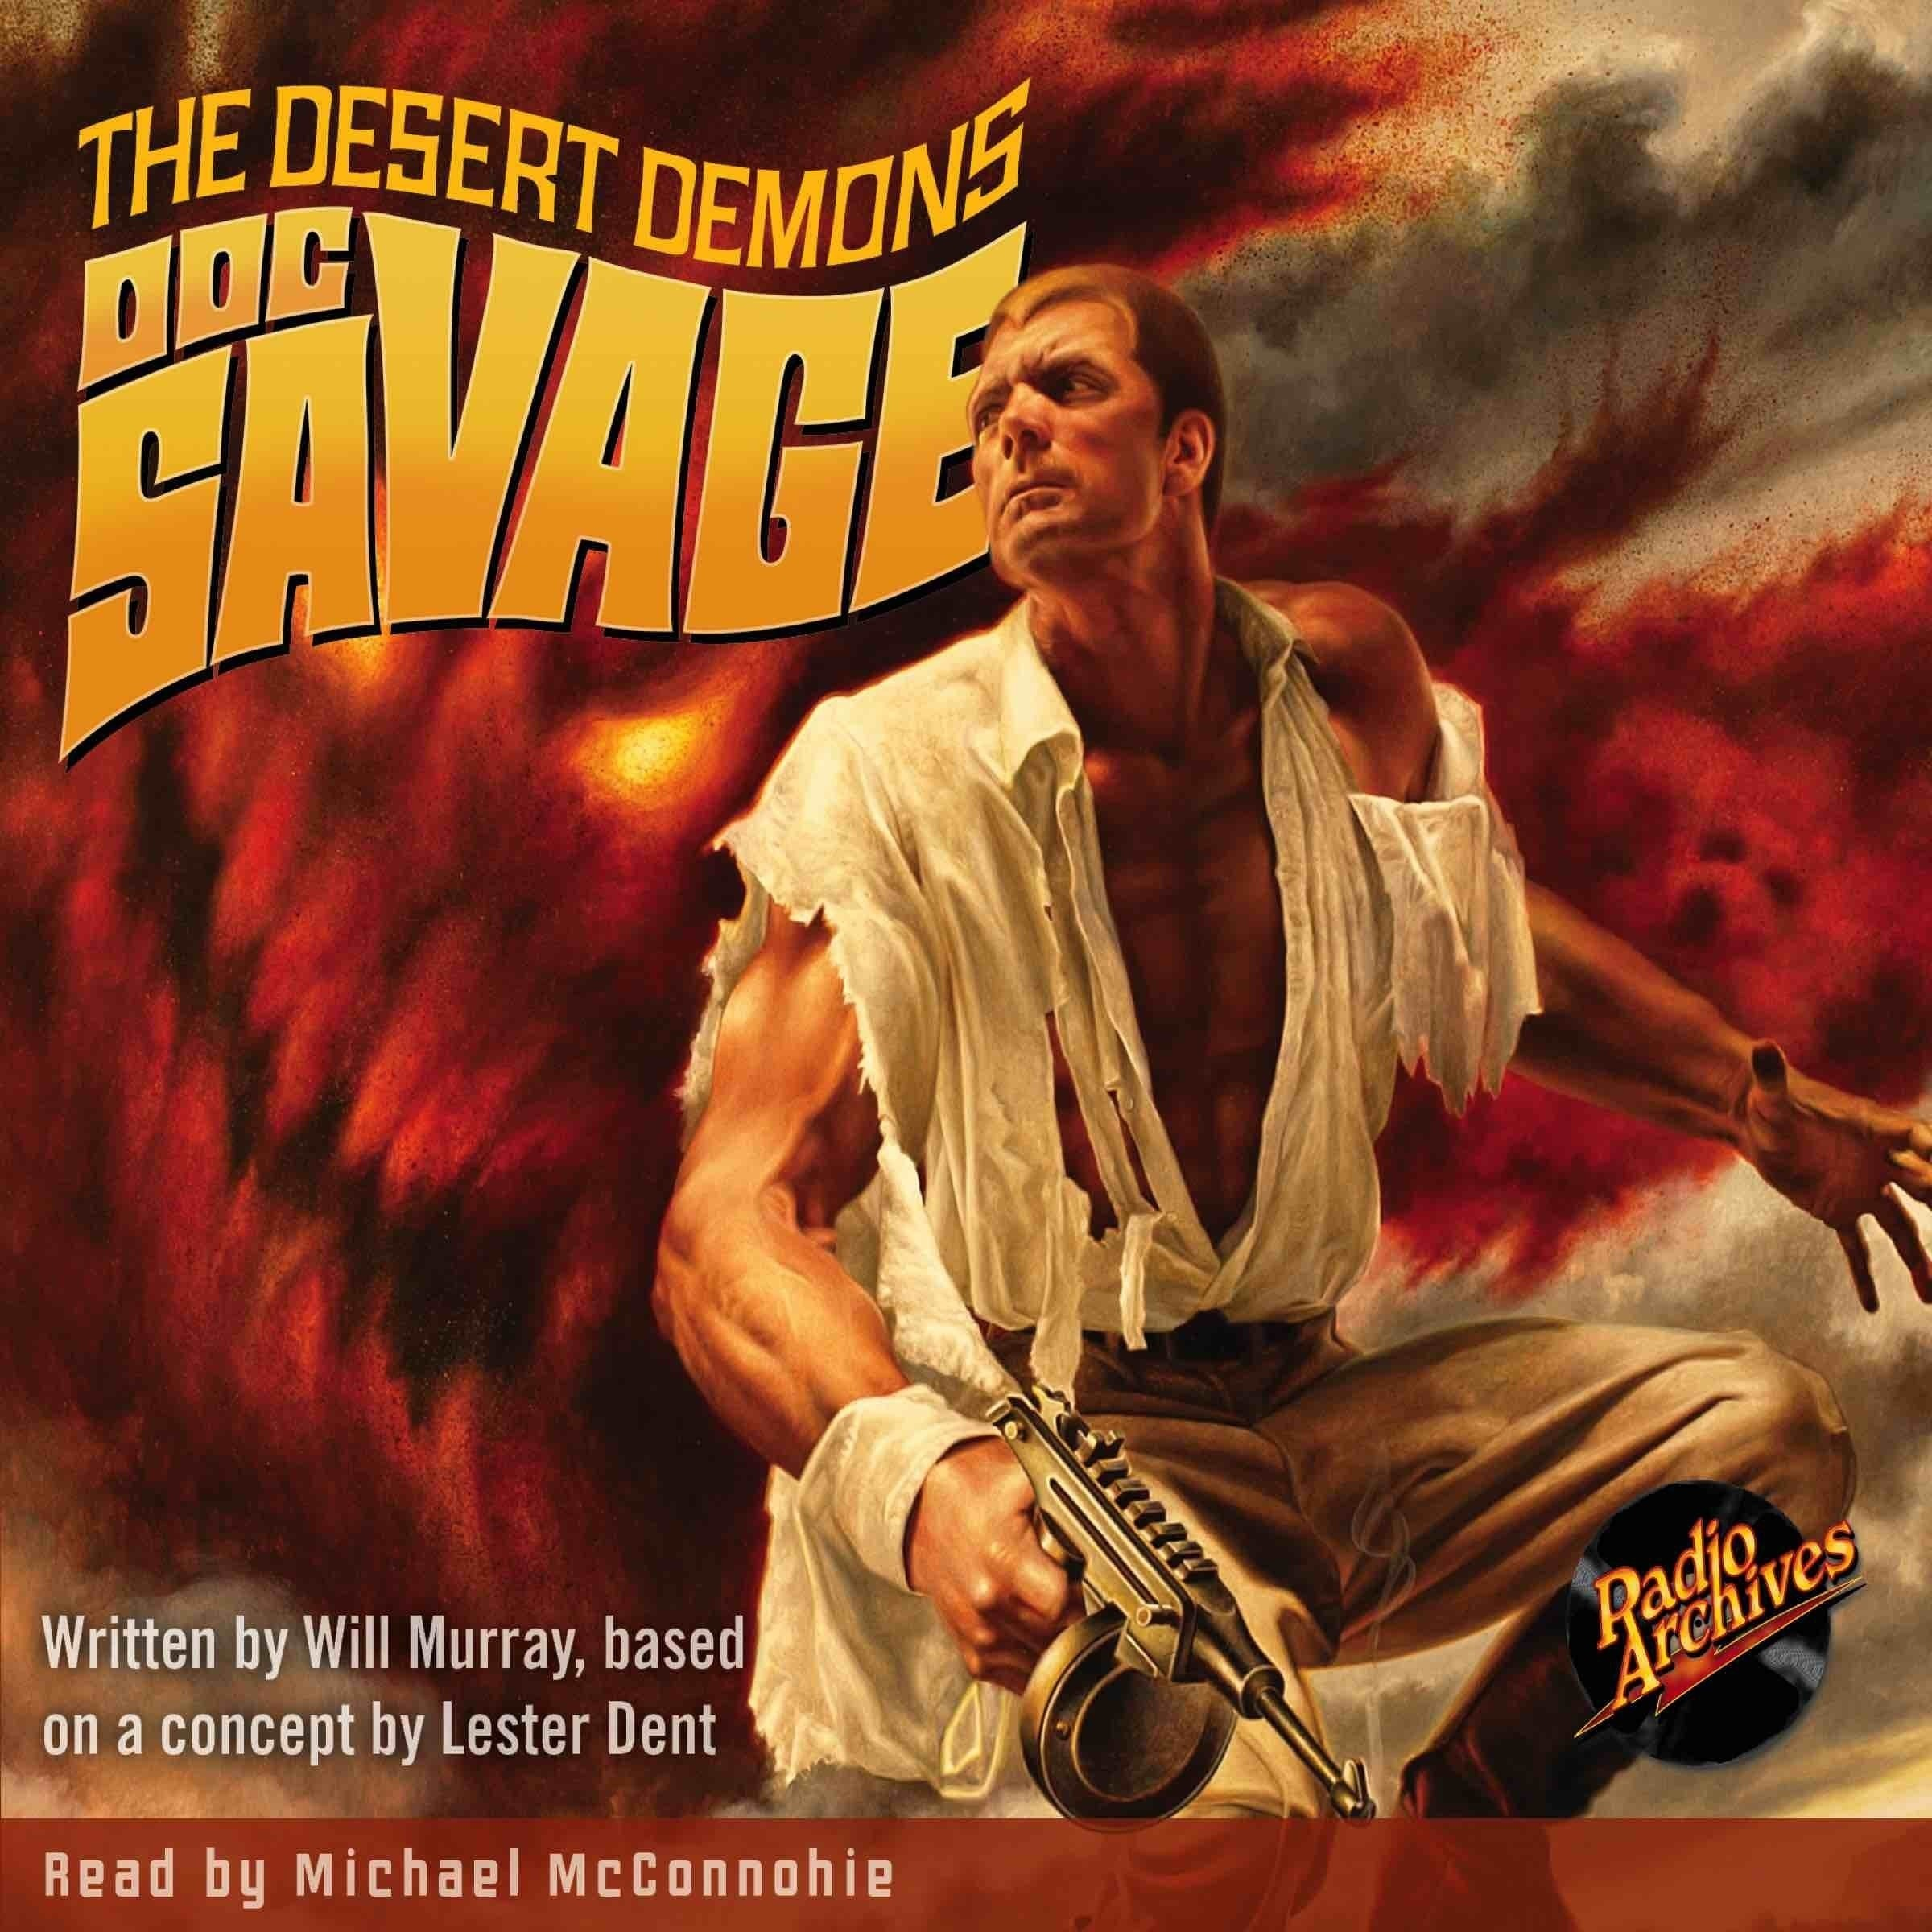 Printable Doc Savage #4: The Desert Demons Audiobook Cover Art